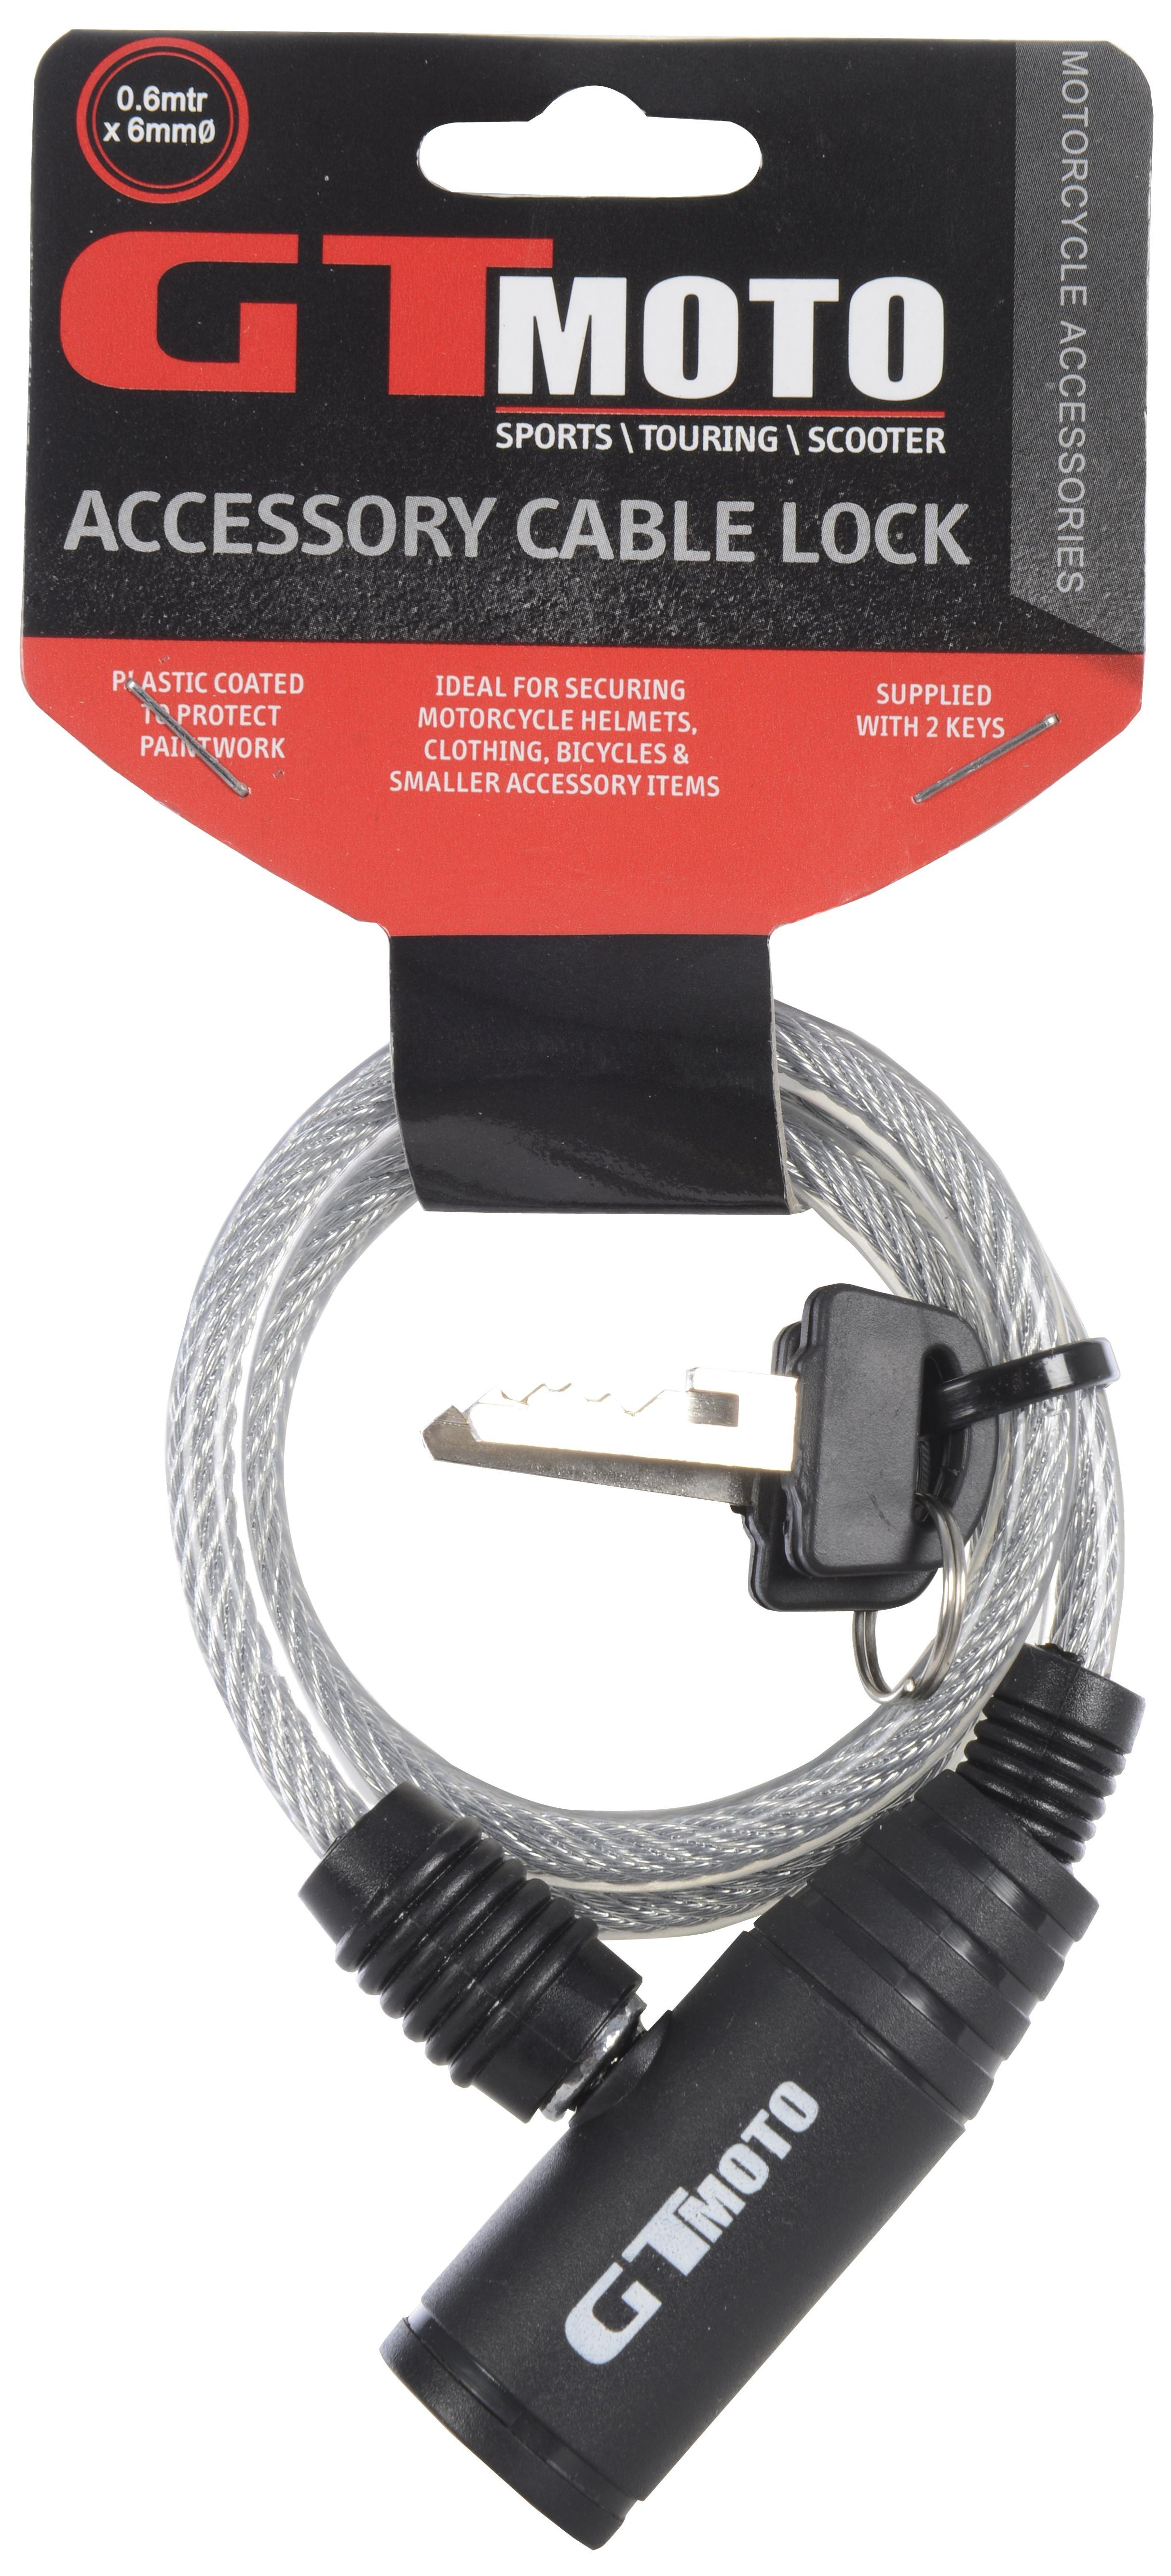 Gtmoto Motorcycle Helmet Cable Lock 60cm Key 6mm Thick